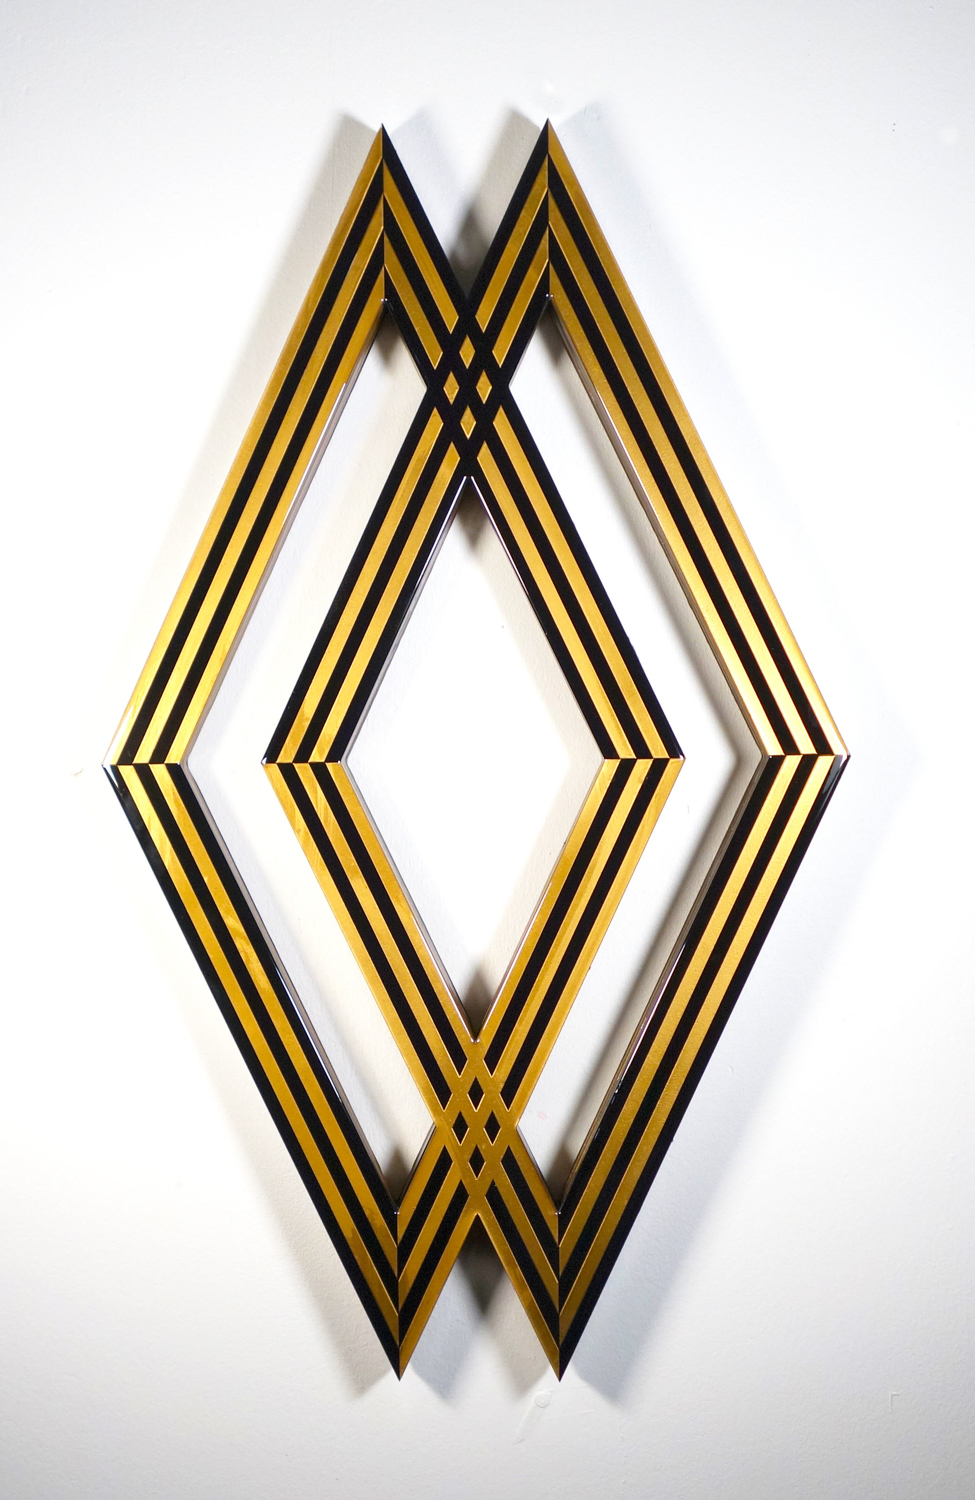 Tavar Zawacki - DIAMOND INTERSECT (GOLD), 2018